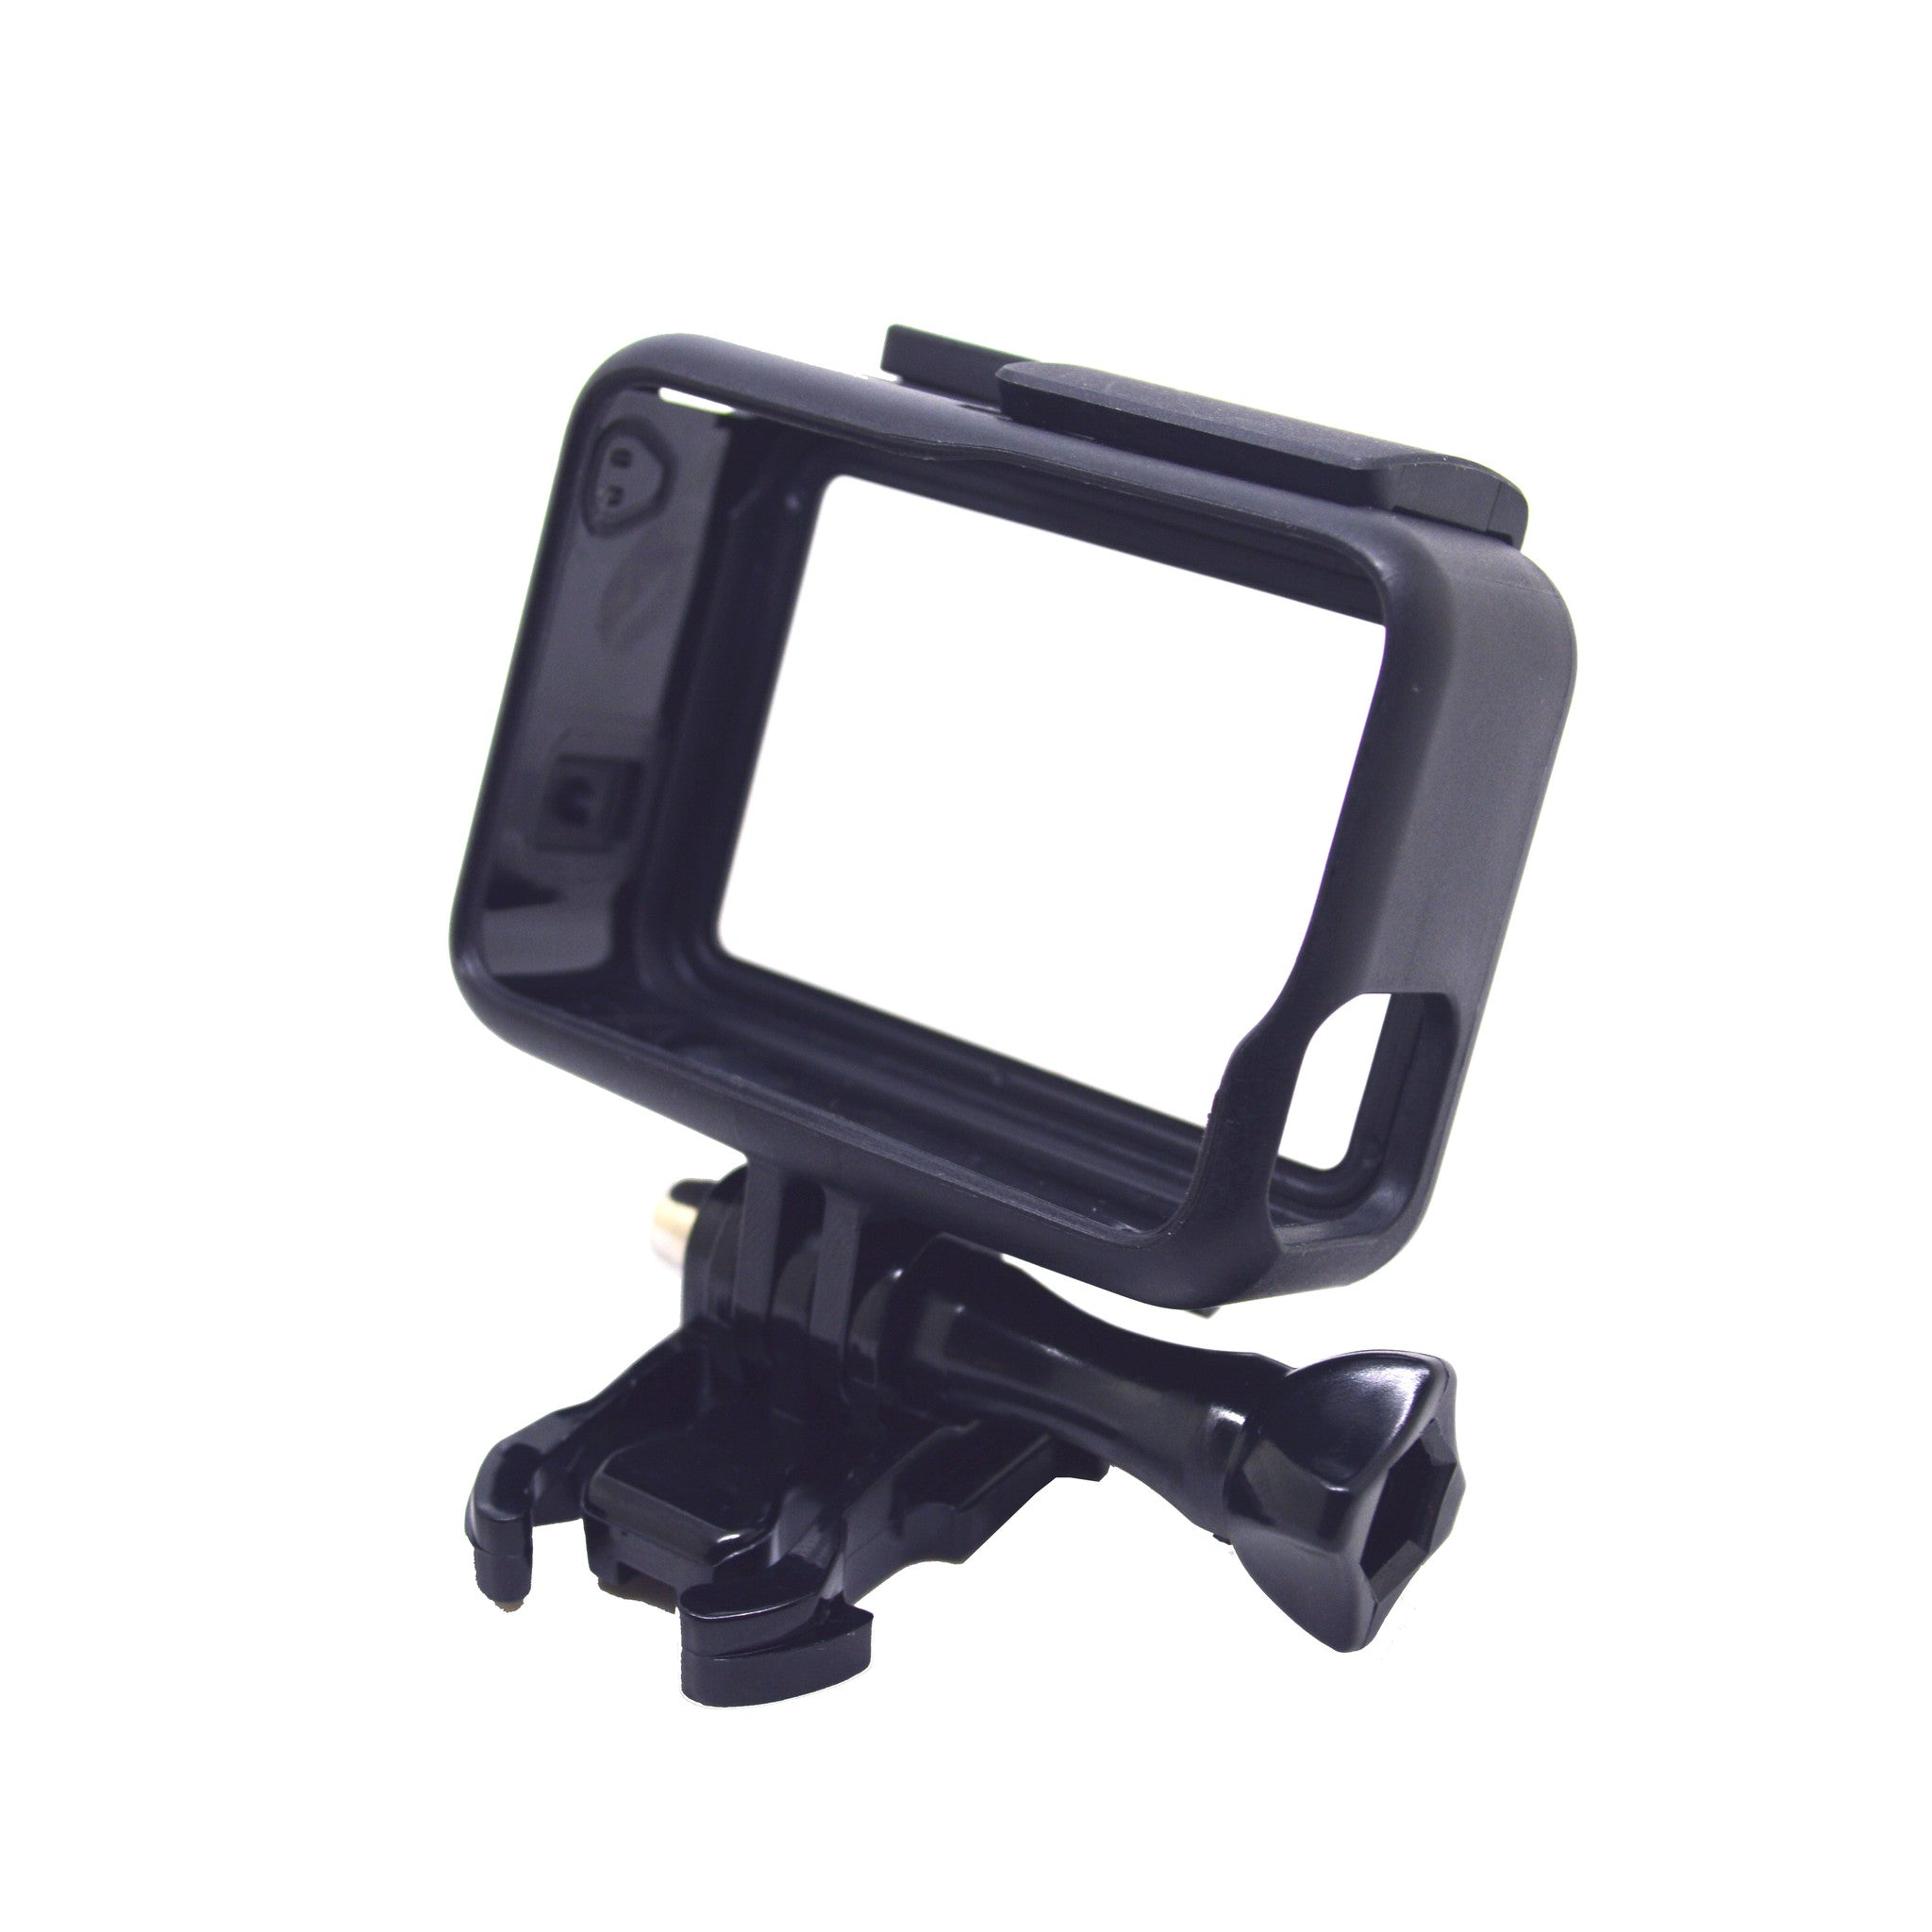 The Frame Case for Gopro 5 Black Camera